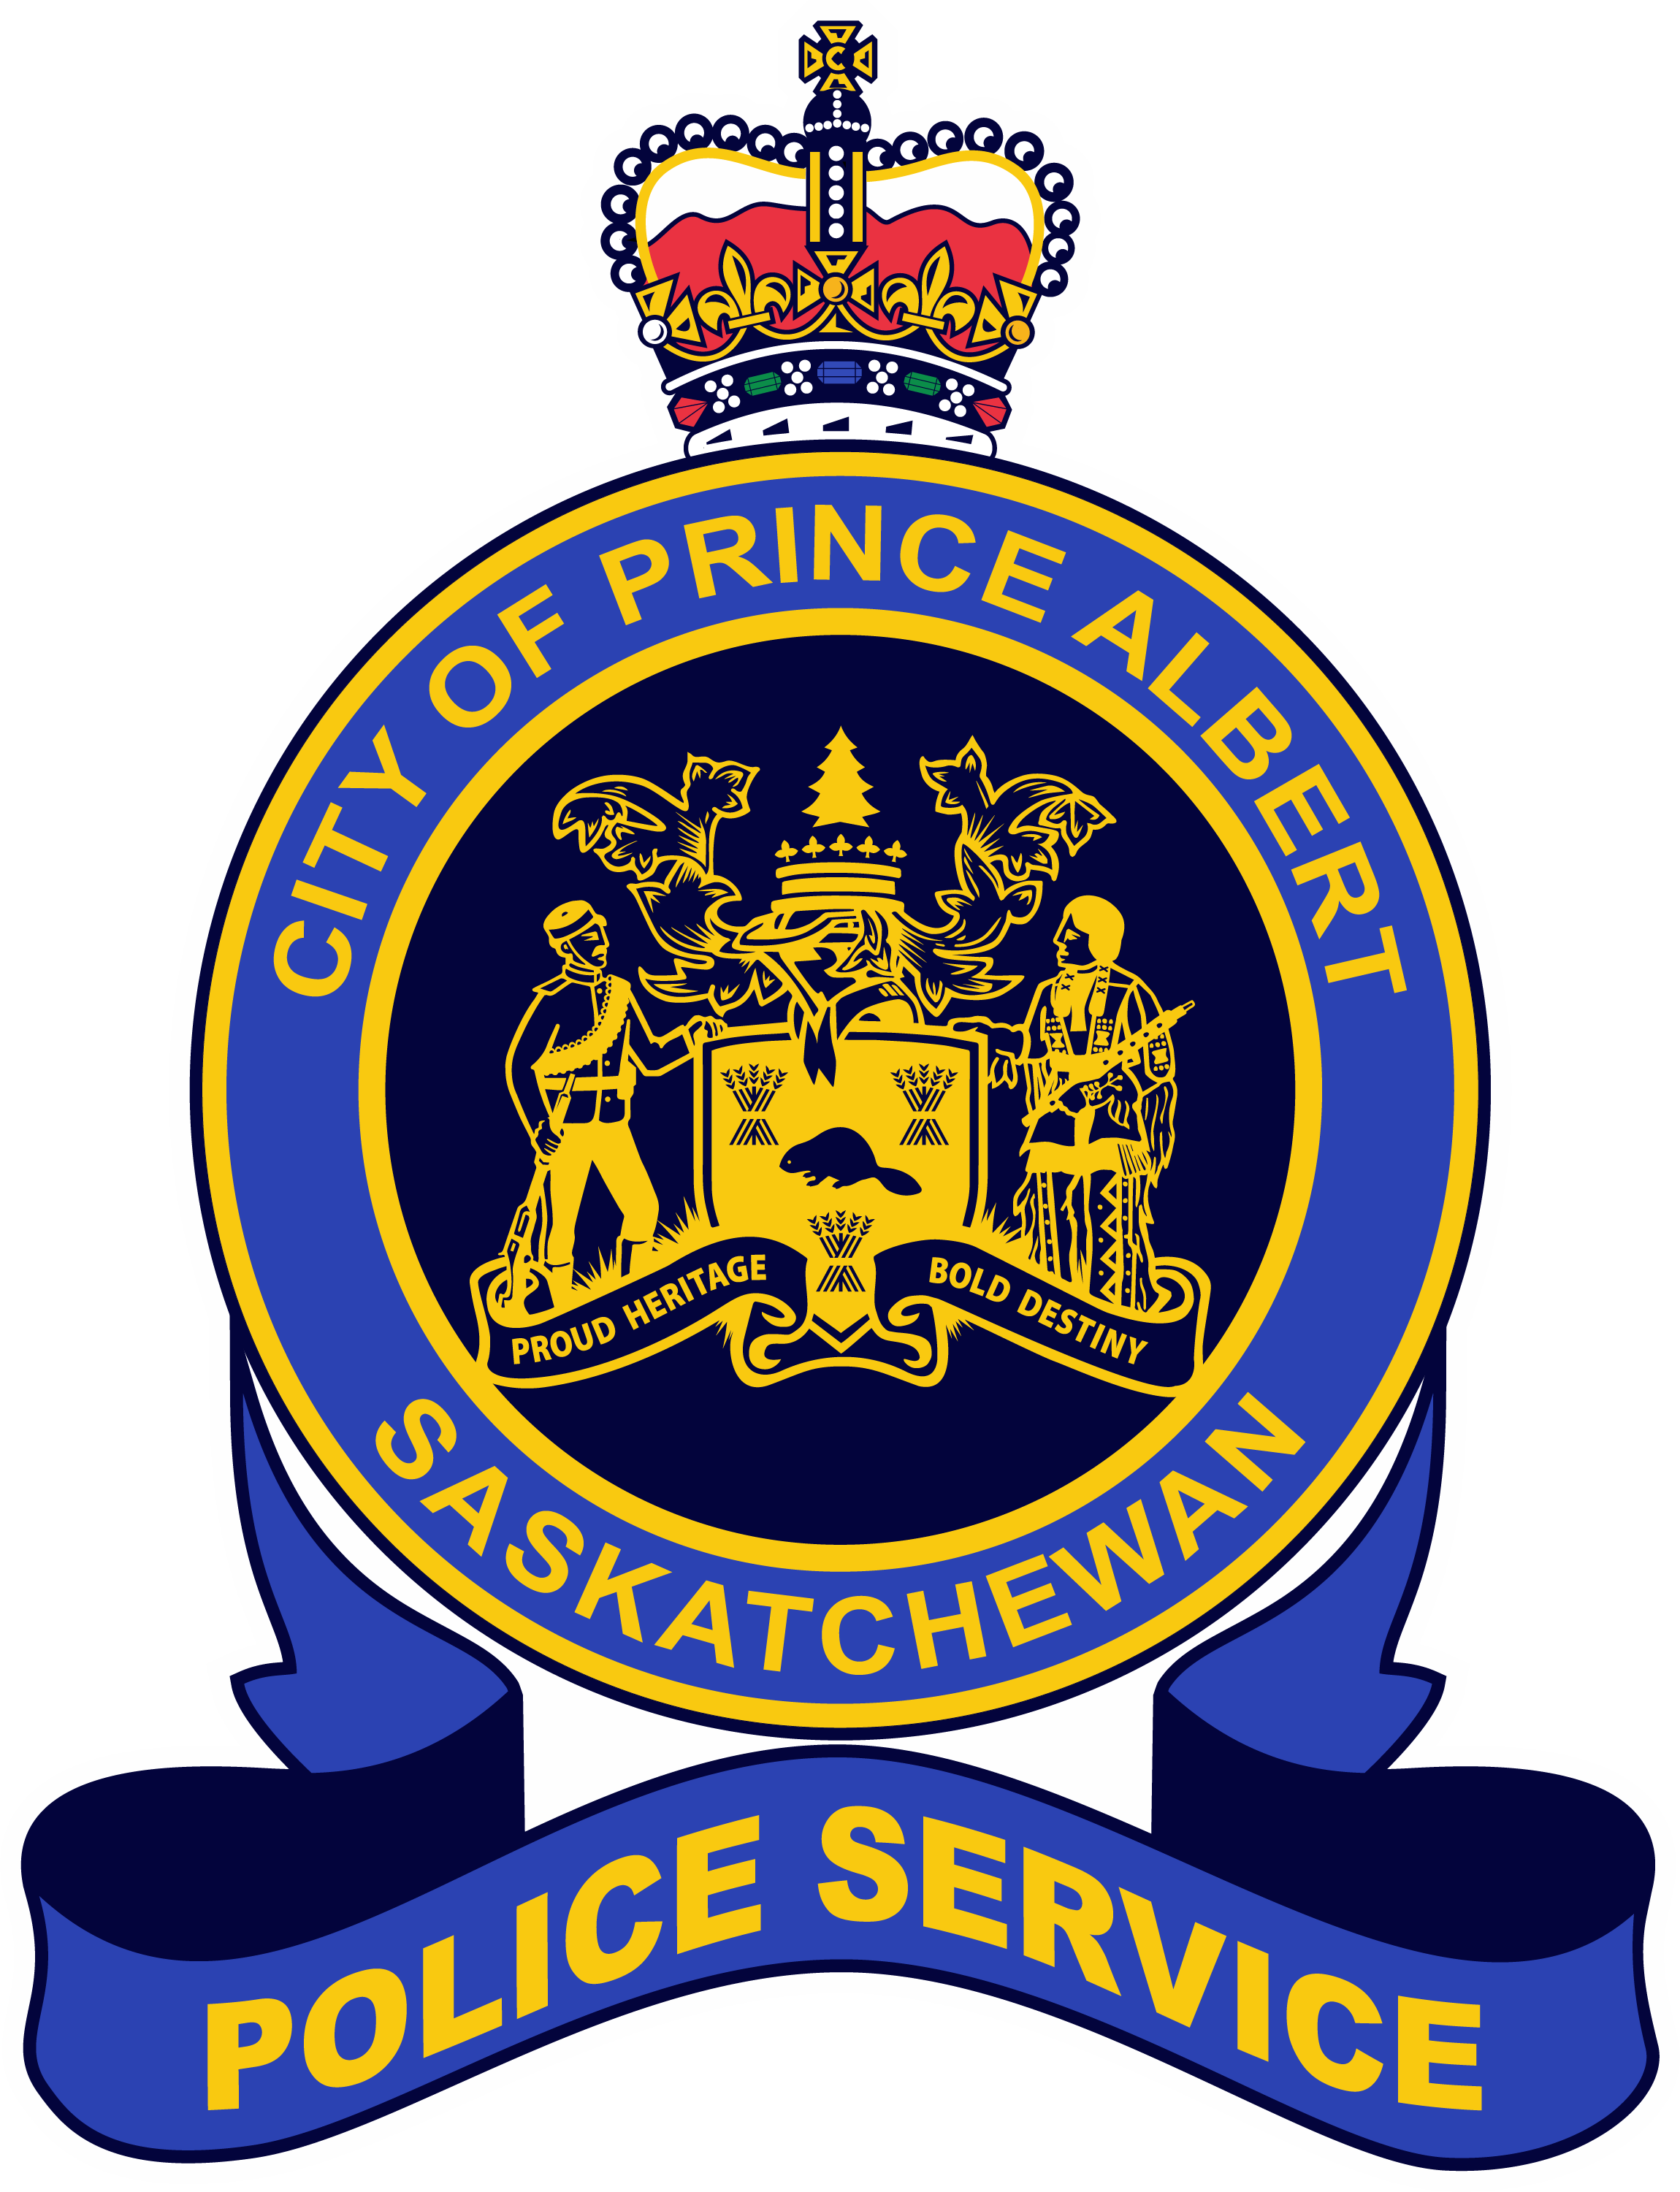 Media Release - Prince Albert Police Committed to Public Safety